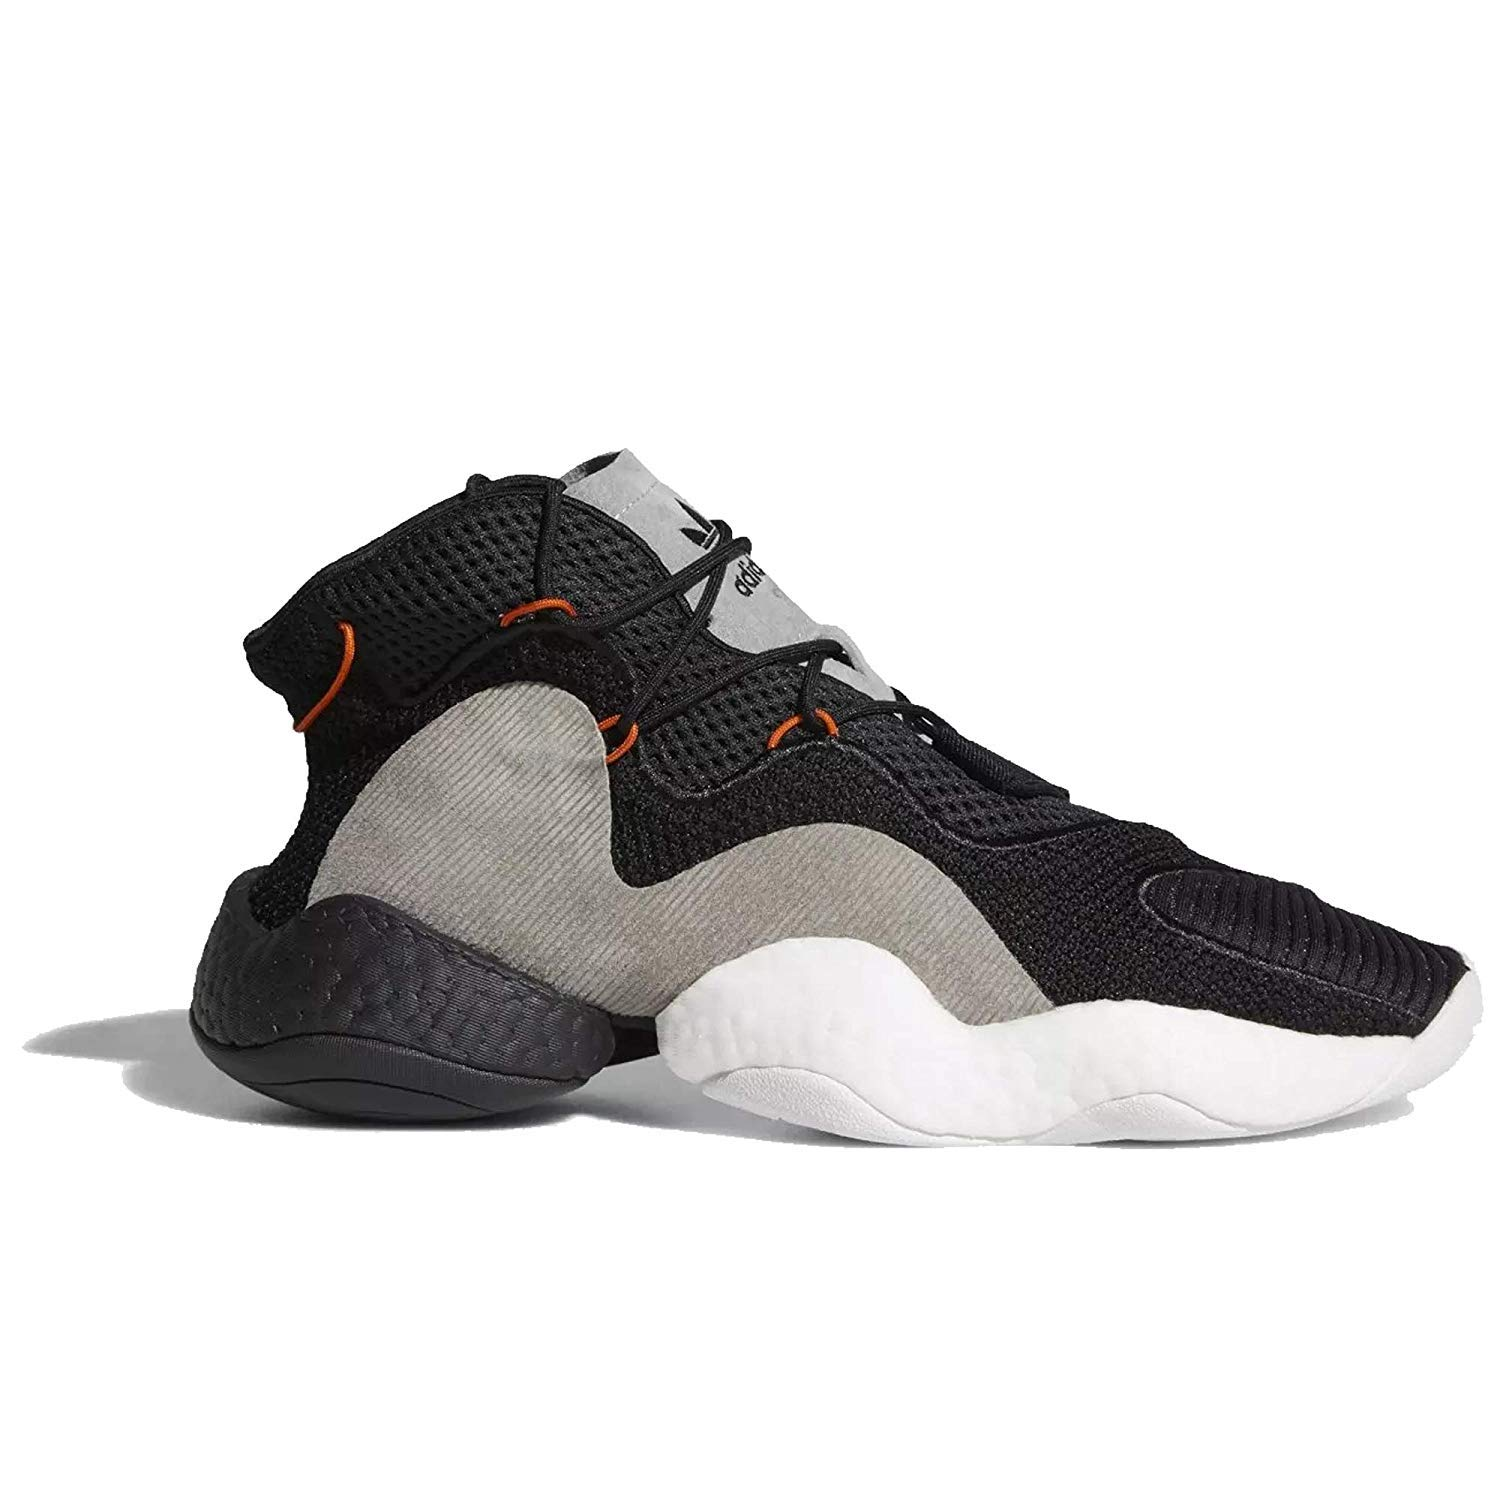 super popular d95be 0fdd0 Amazon.com | adidas Men's Originals Crazy BYW Shoes CQ0993 ...